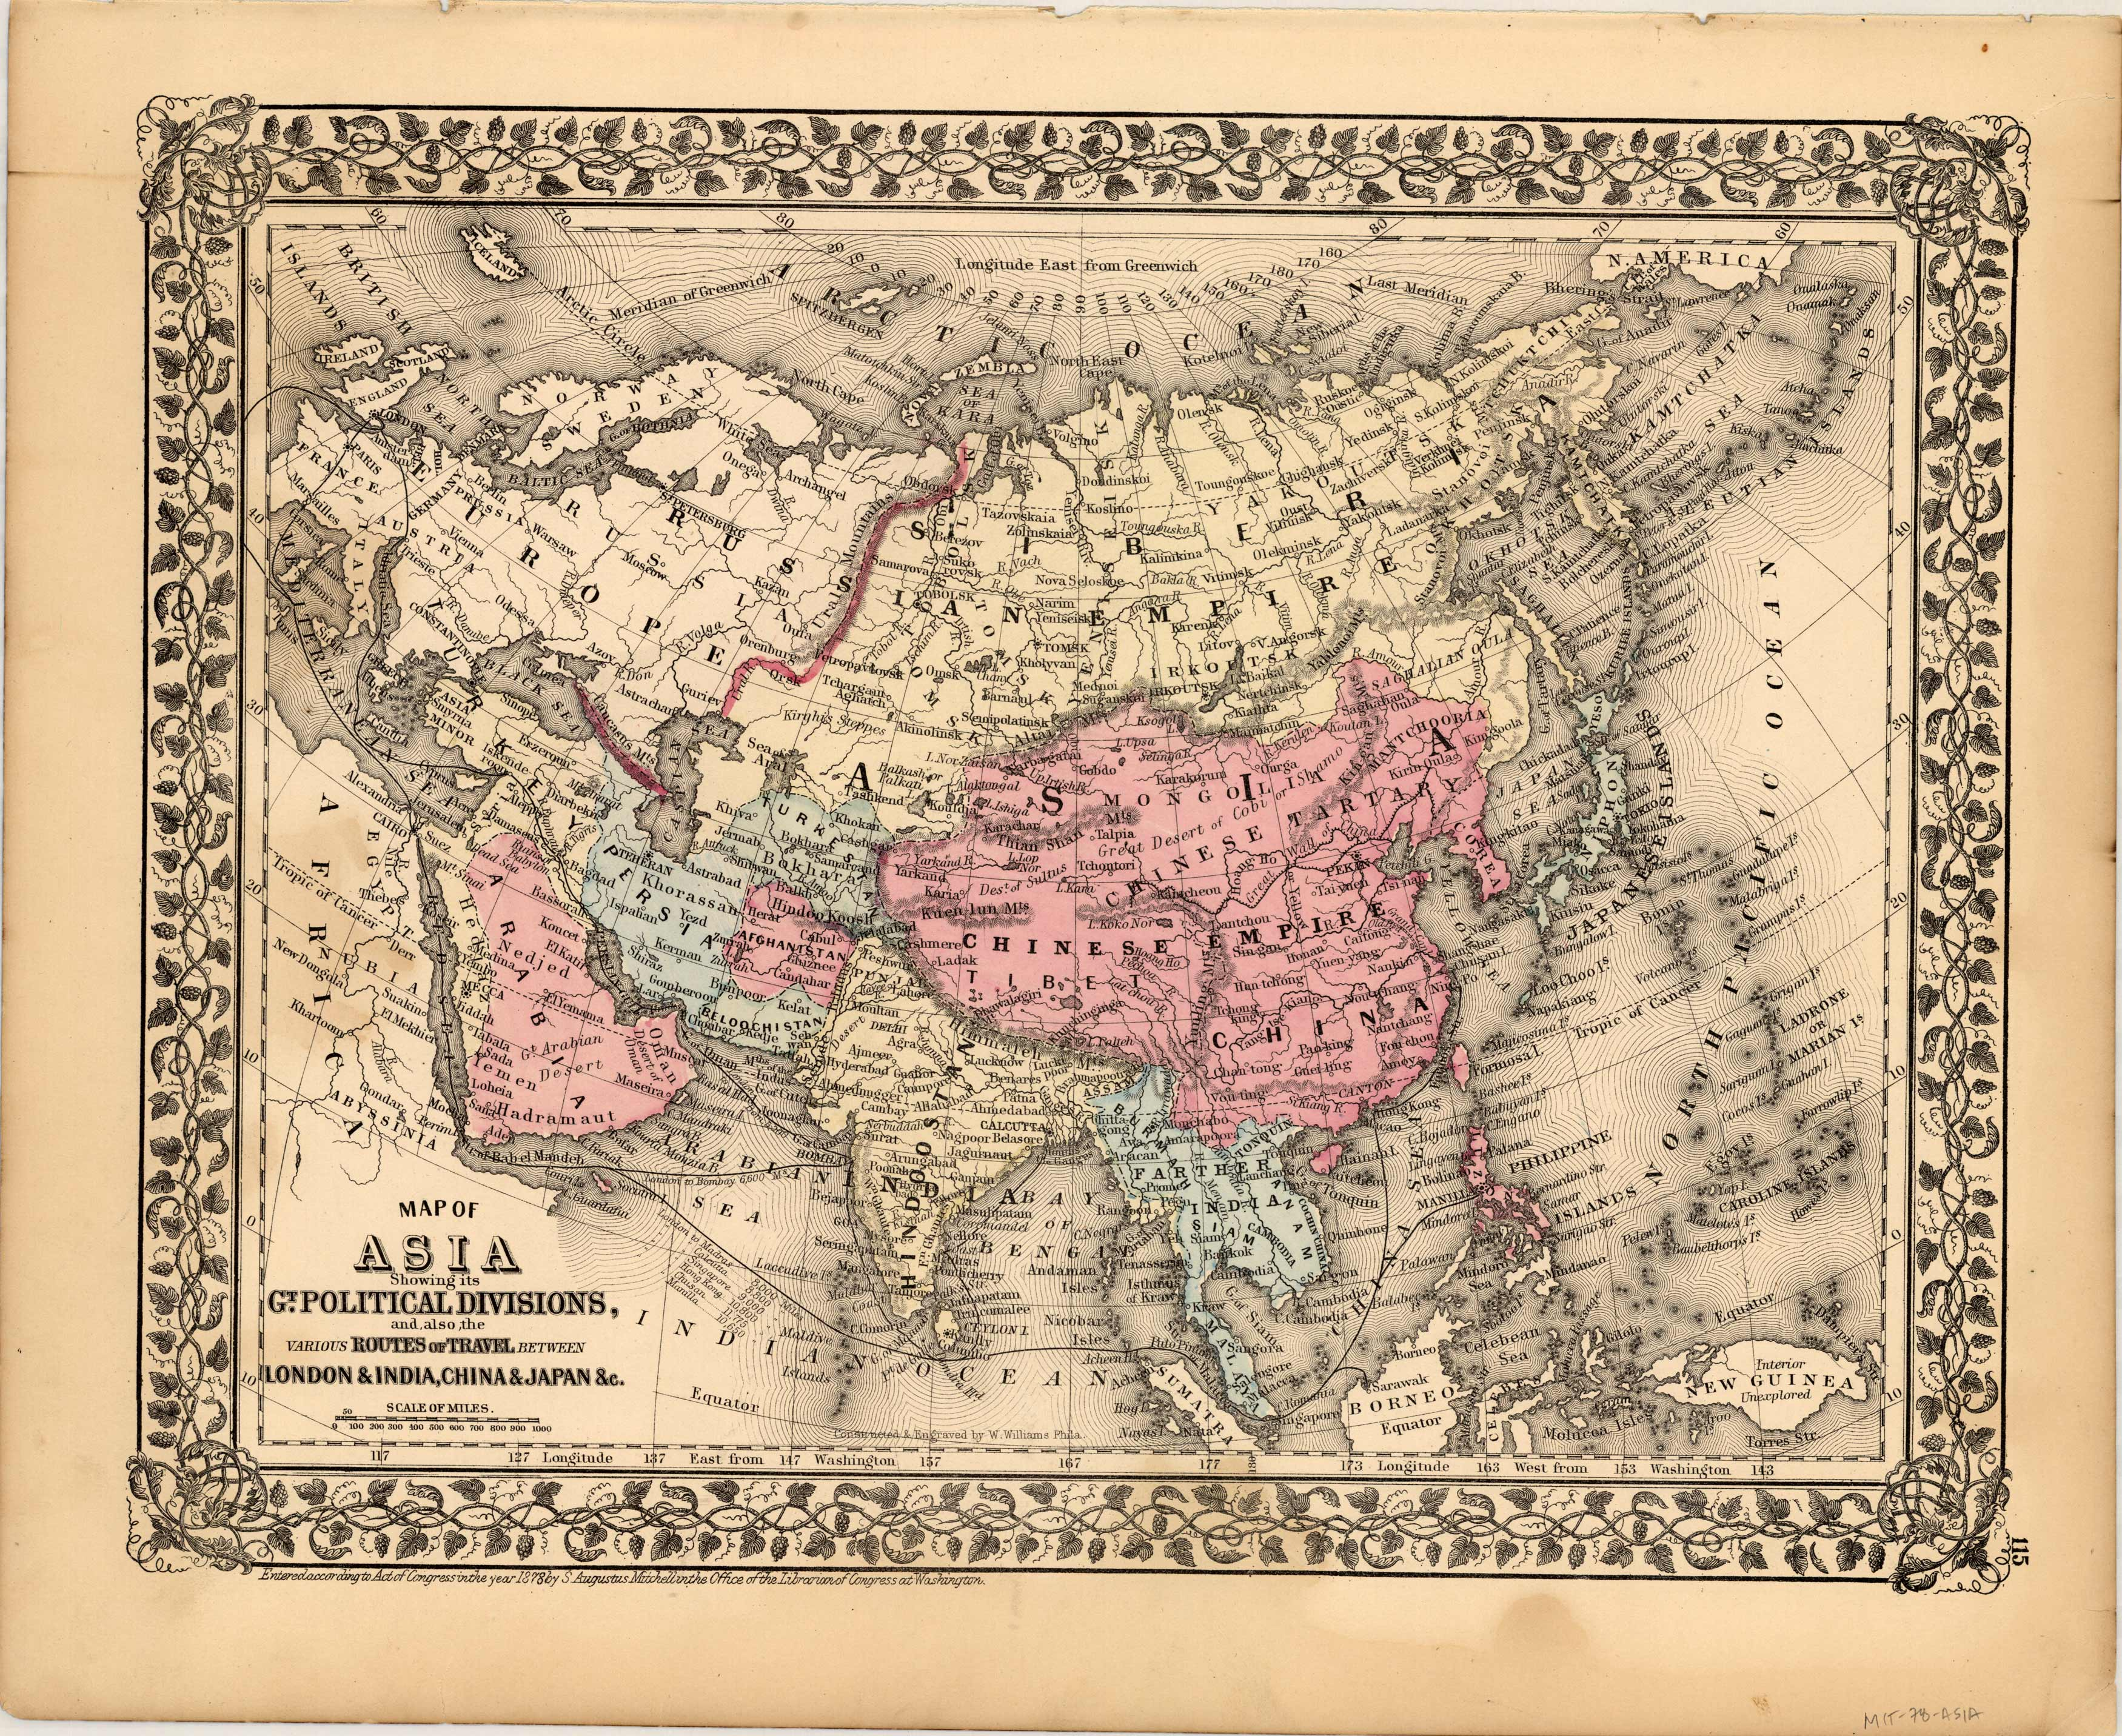 Map of Asia showing its GT. Political Divisons and also various routes of the travel between London